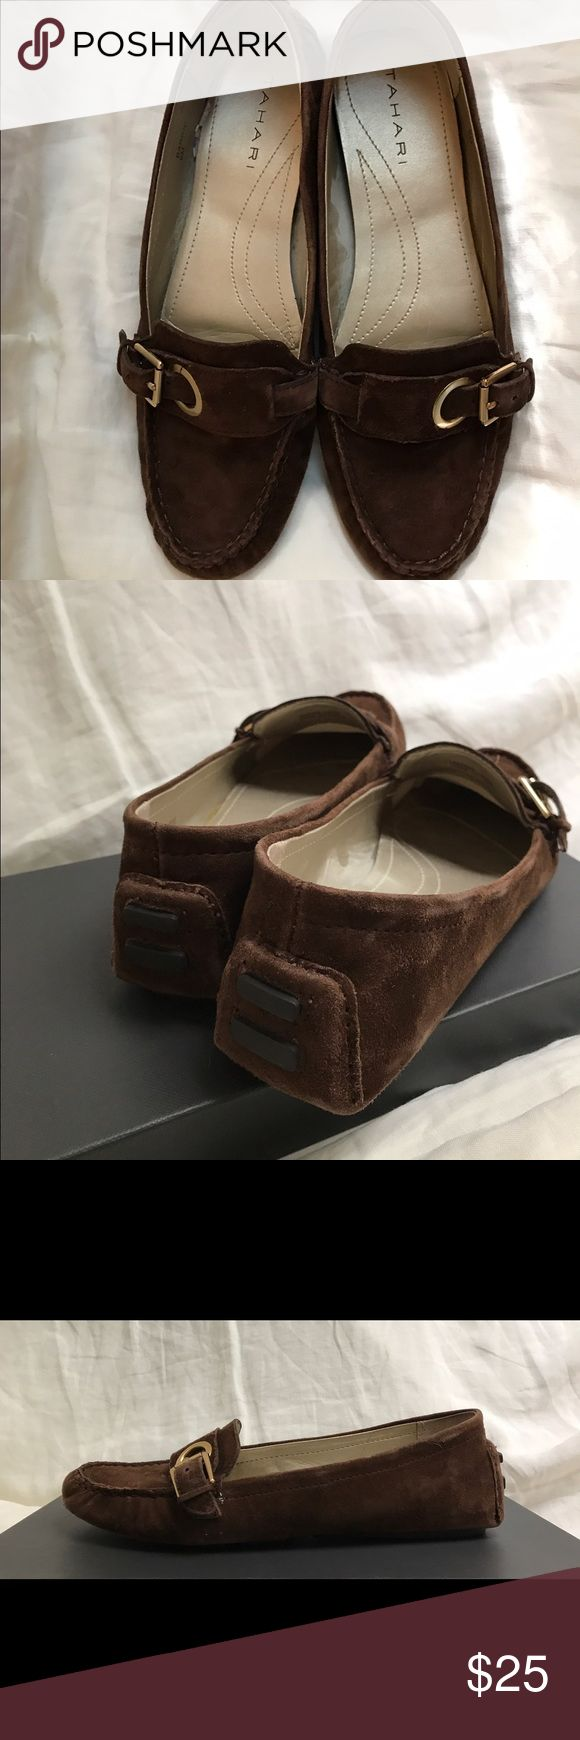 New in box Tahari brown suede loafers. Comfortable and stylish Tahari loafers. Perfect chocolate brown suede with buckle detail on front and driving detail at heel Tahari Shoes Flats & Loafers